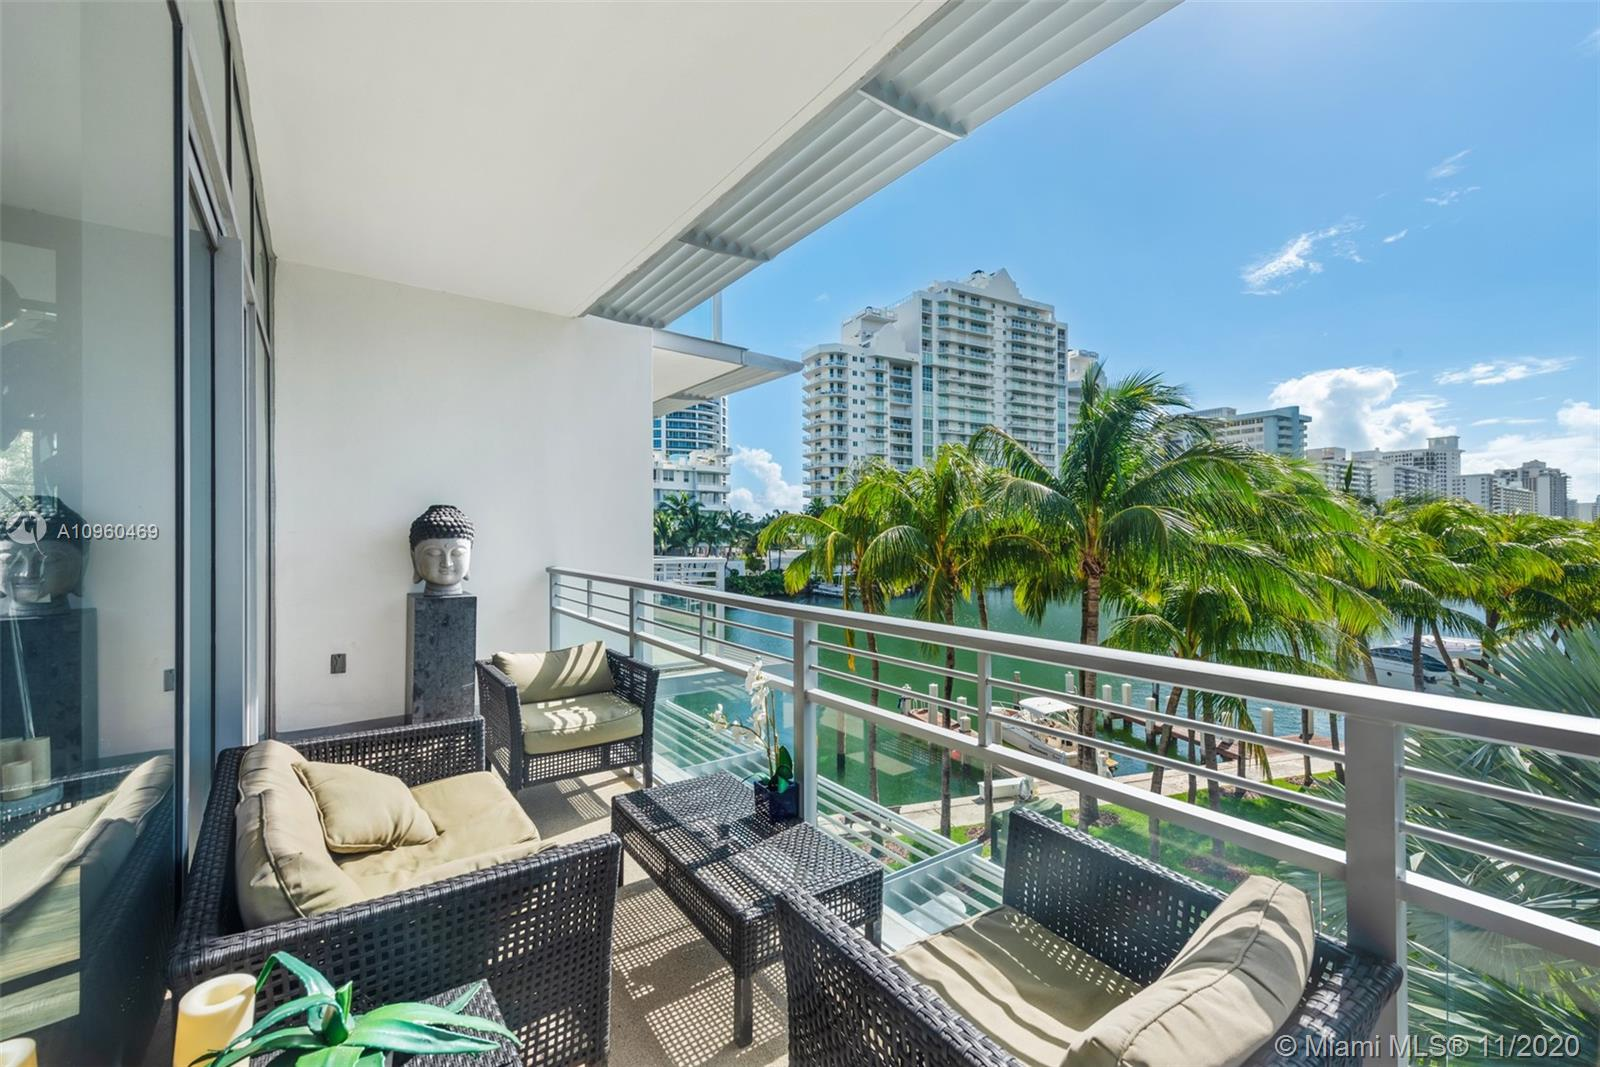 Rare opportunity to own in the largest line in the fabulous Gorlin Building. Light, bright and super expansive 3 BD / 3.5 BA southwest corner overlooking the Intracoastal and Aqua Island Homes. Top finishes. Aqua at Allison Island is the only private island in Miami Beach with resort quality spa/gym, enormous waterfront swimming pool, on-site market and much more.